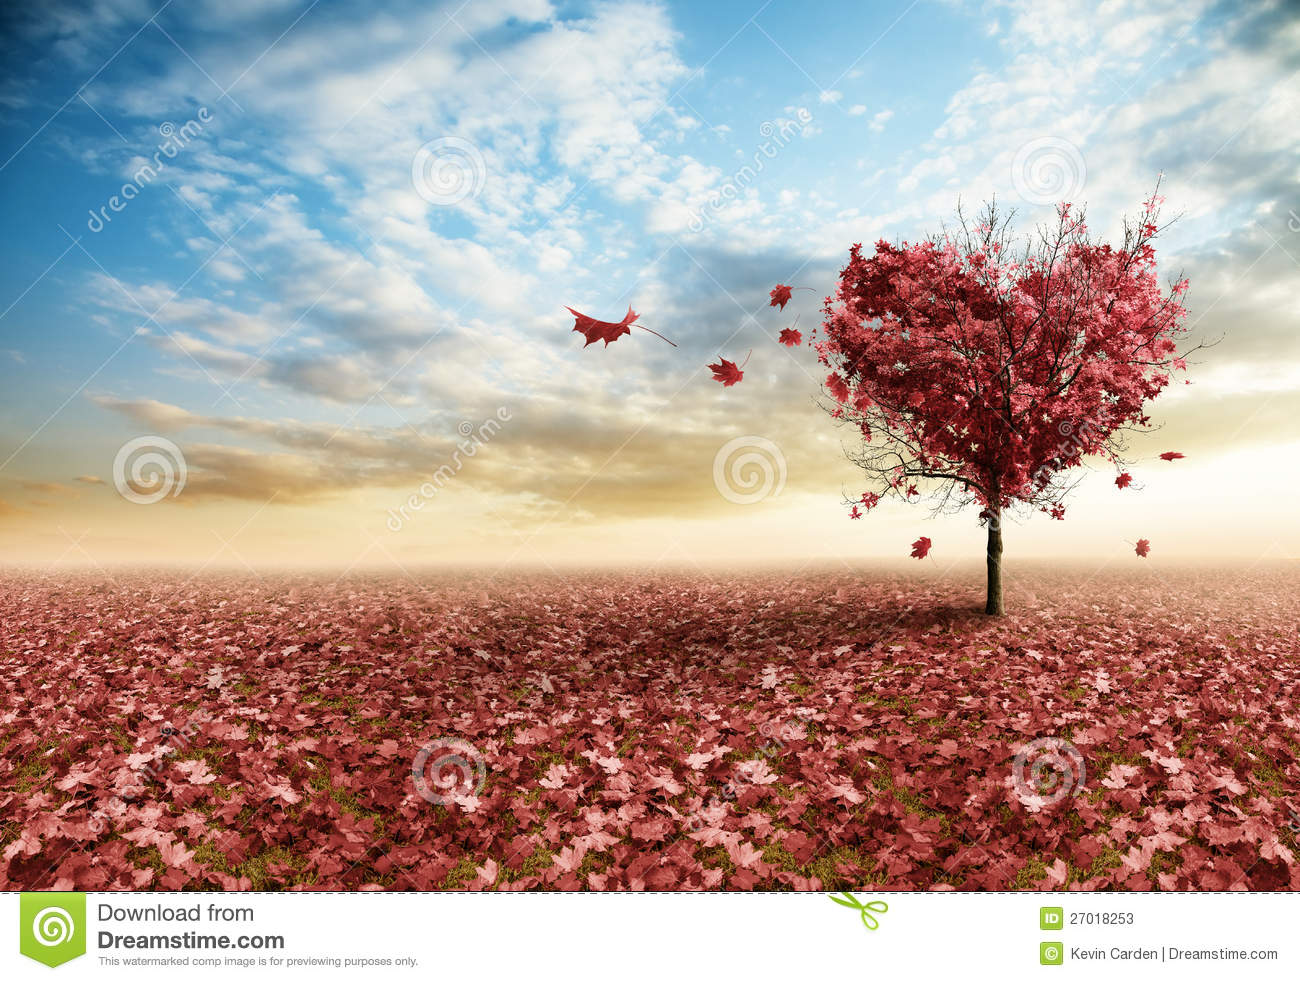 Free Fall Foliage Wallpaper Red Heart Tree Stock Image Image Of Grow Outdoor Maple